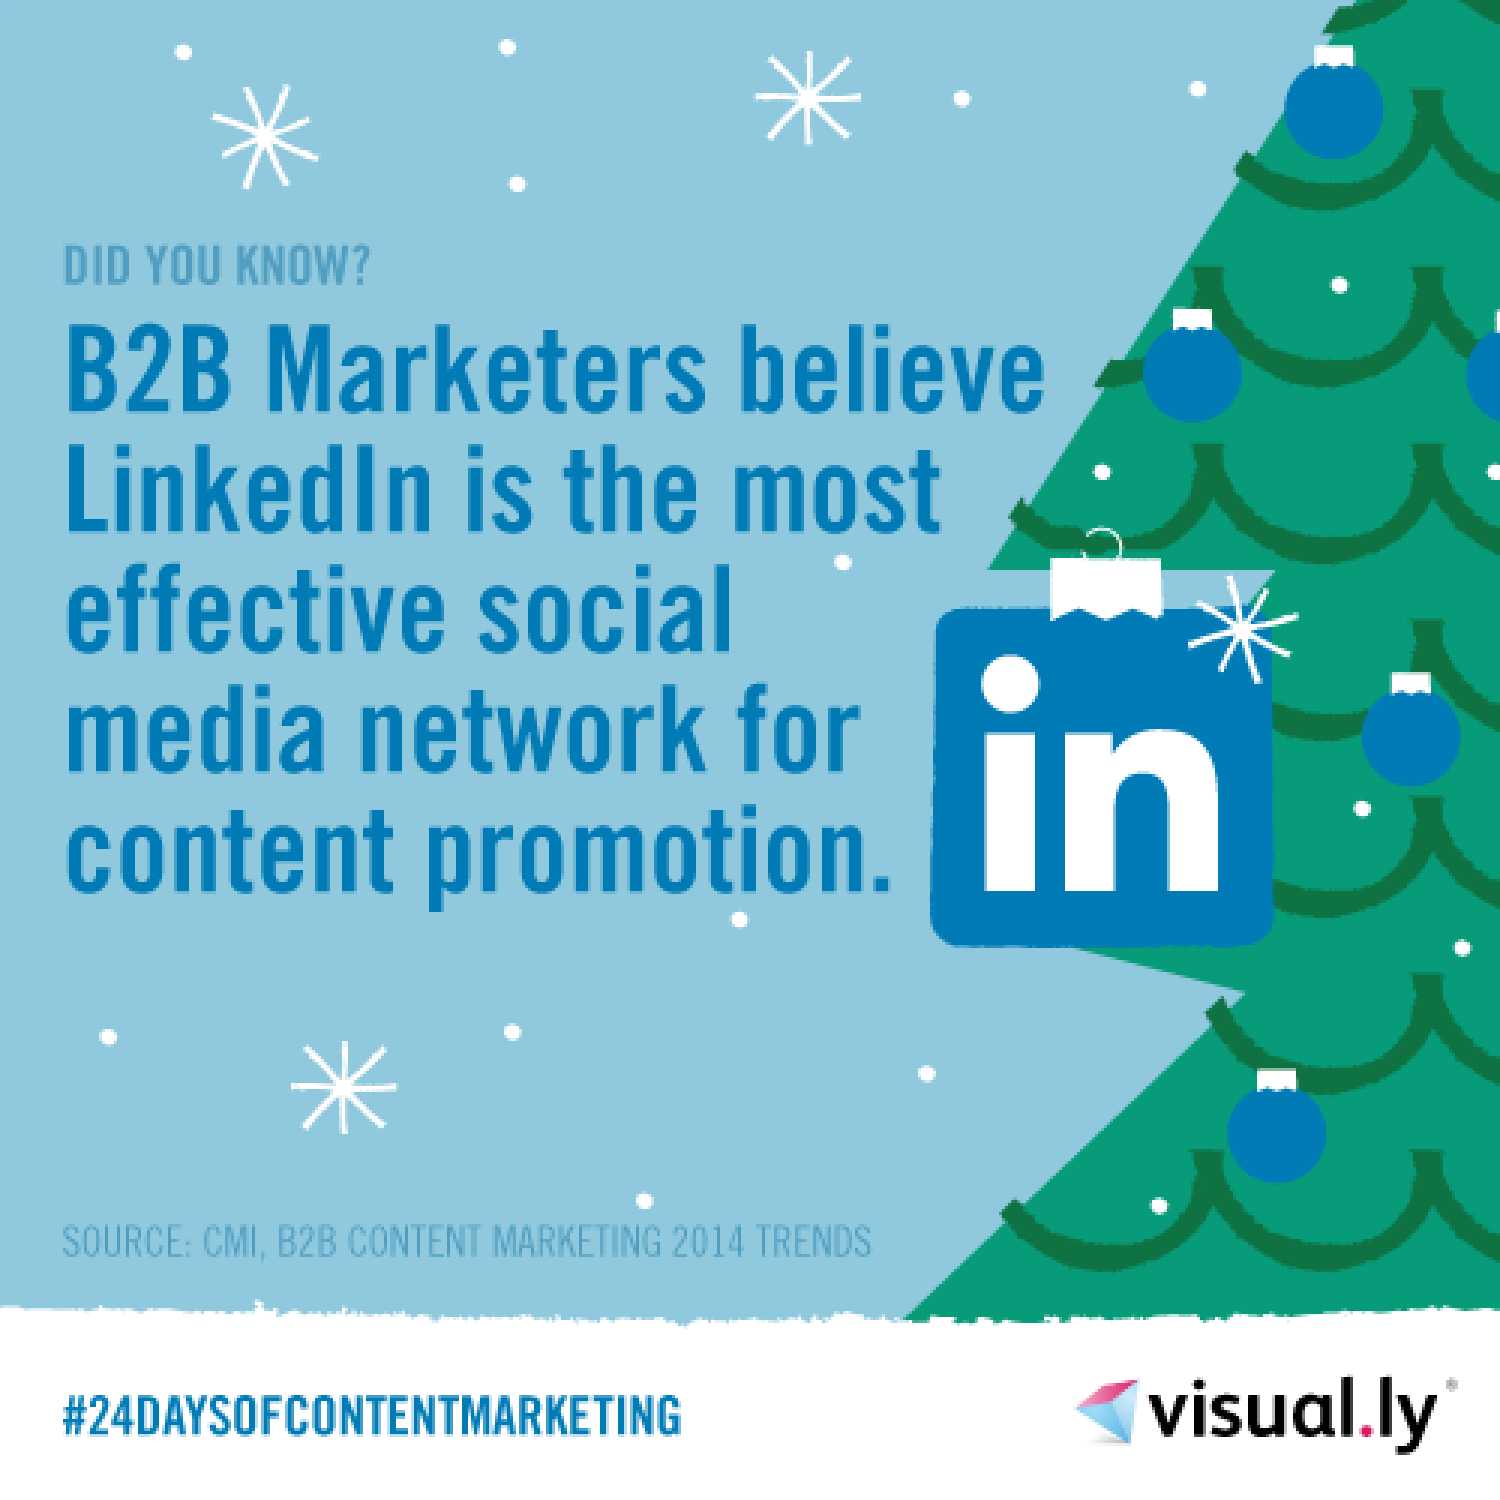 B2B Marketers and Content Promotion Infographic